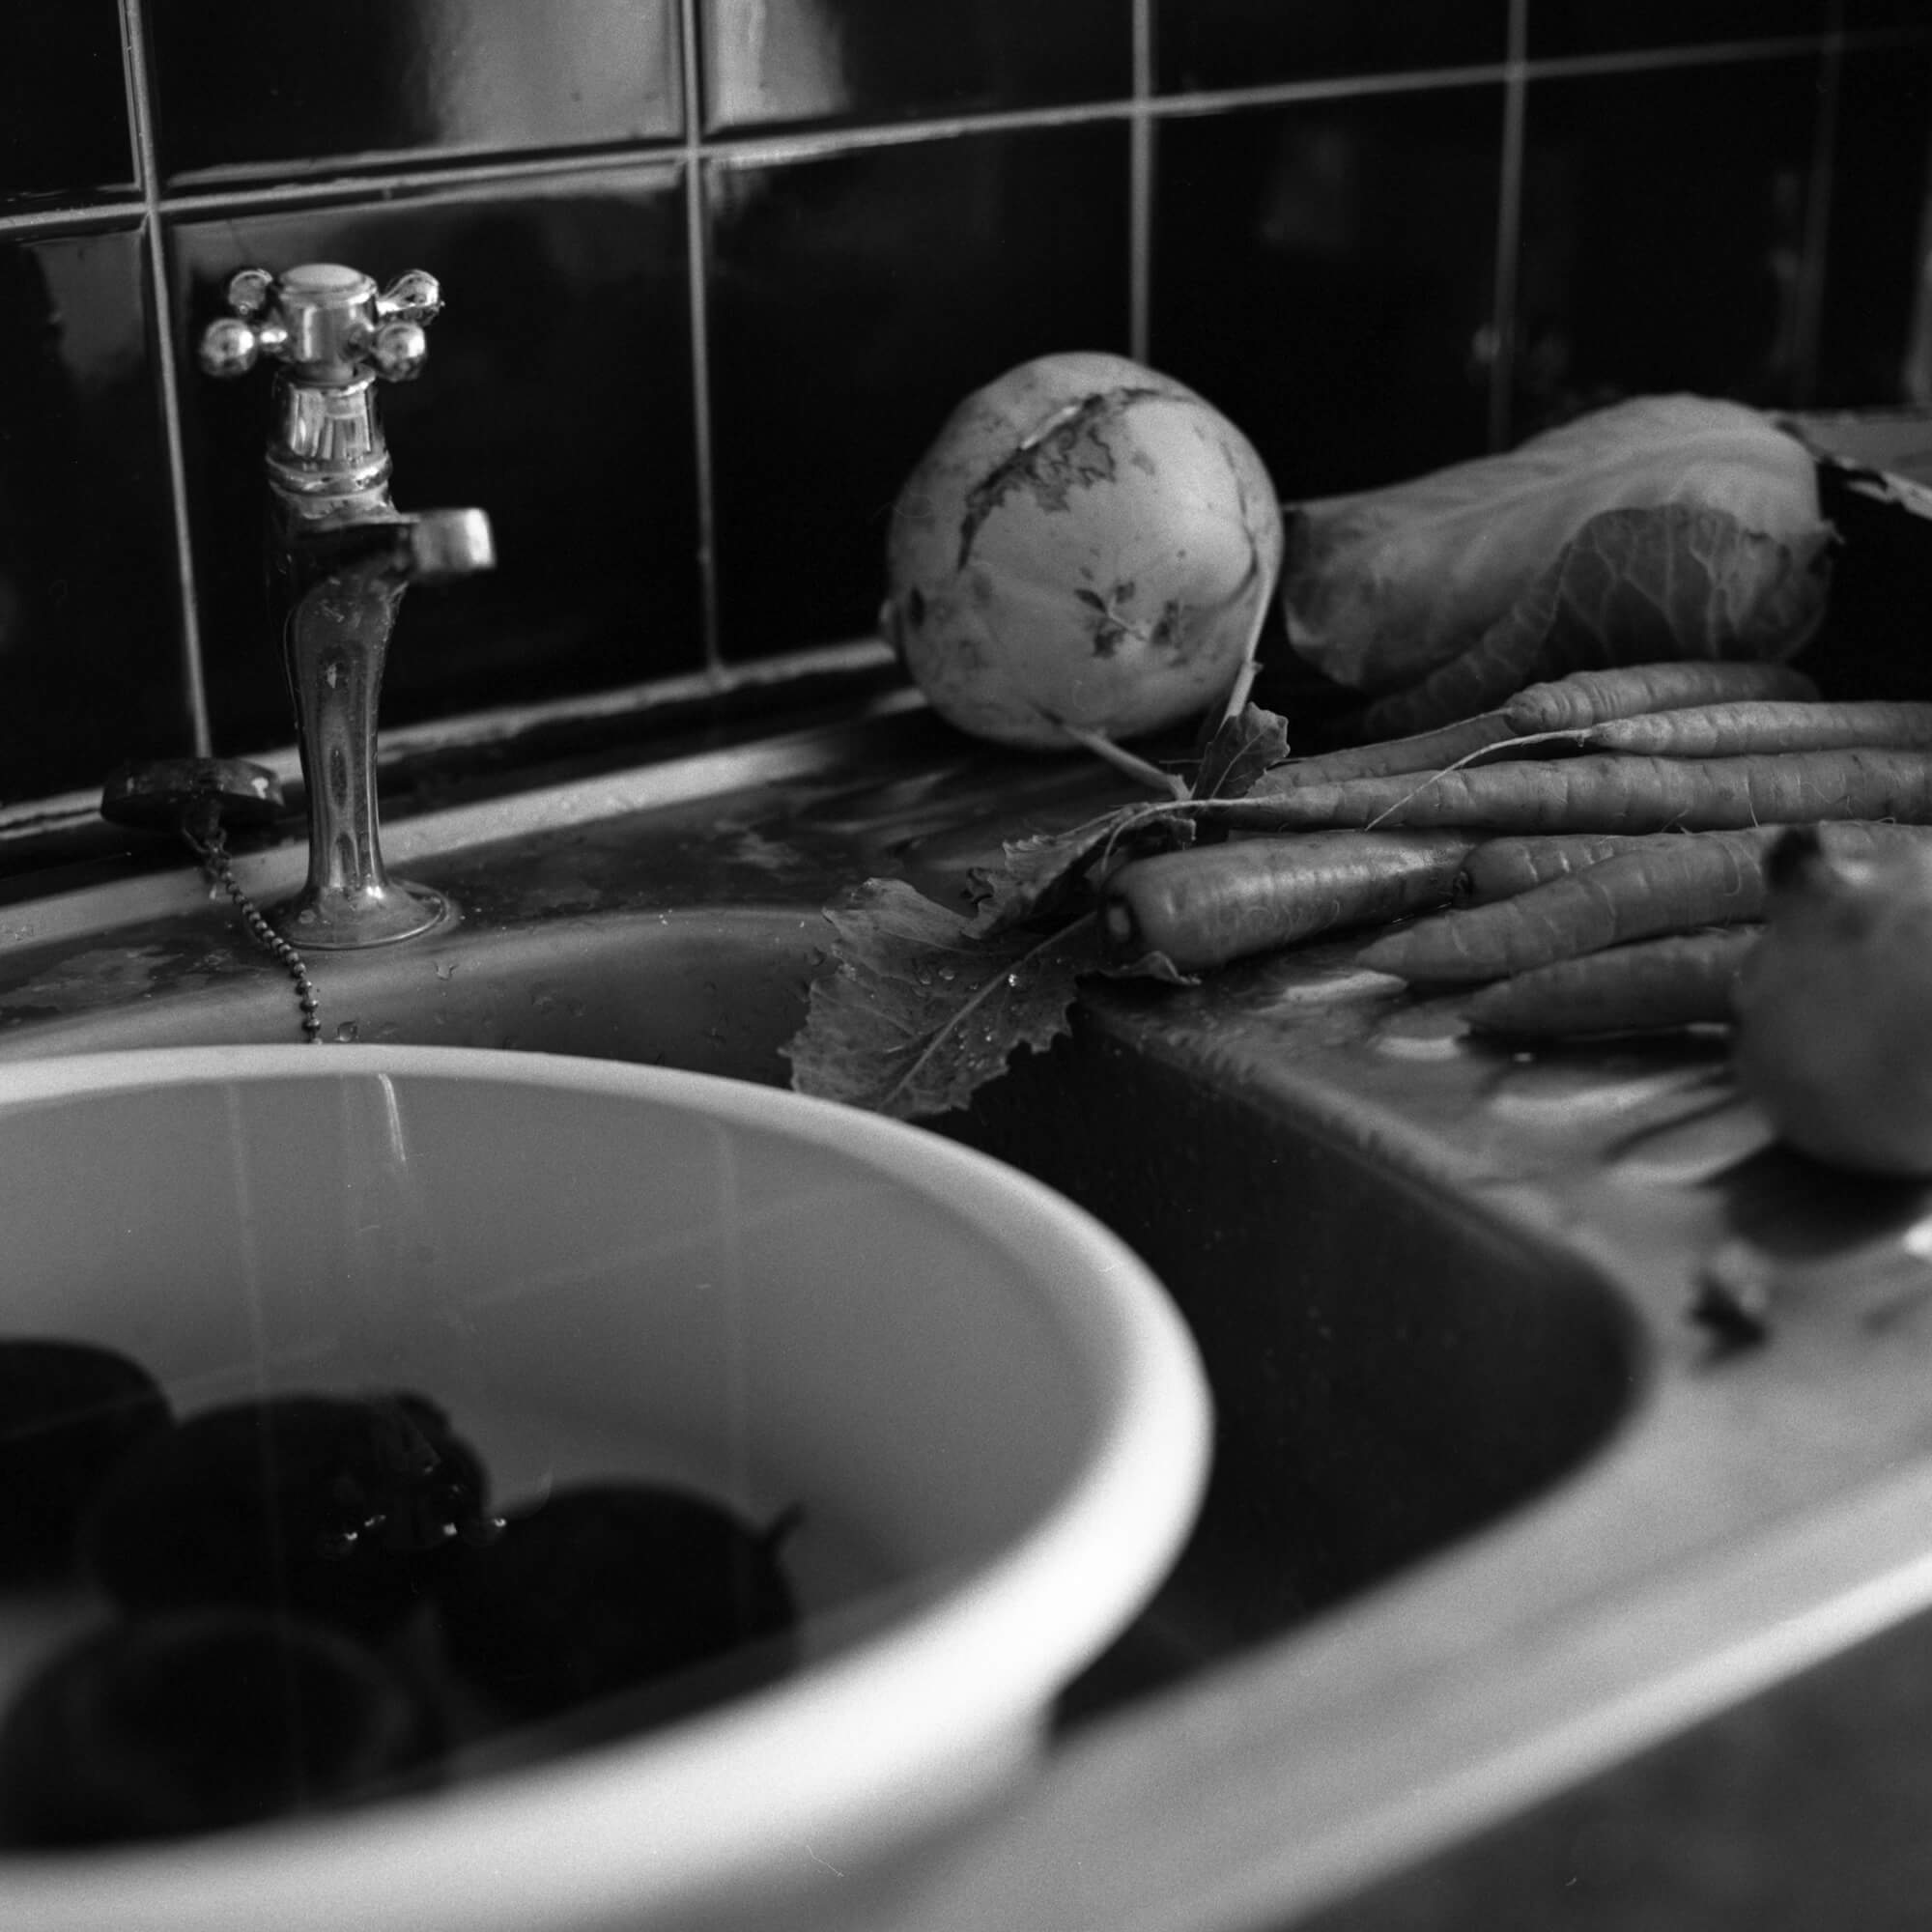 Phoebe Somerfield - Grapefruit Boulevard the south west collective of photography black and white photo of vegetables in the sink